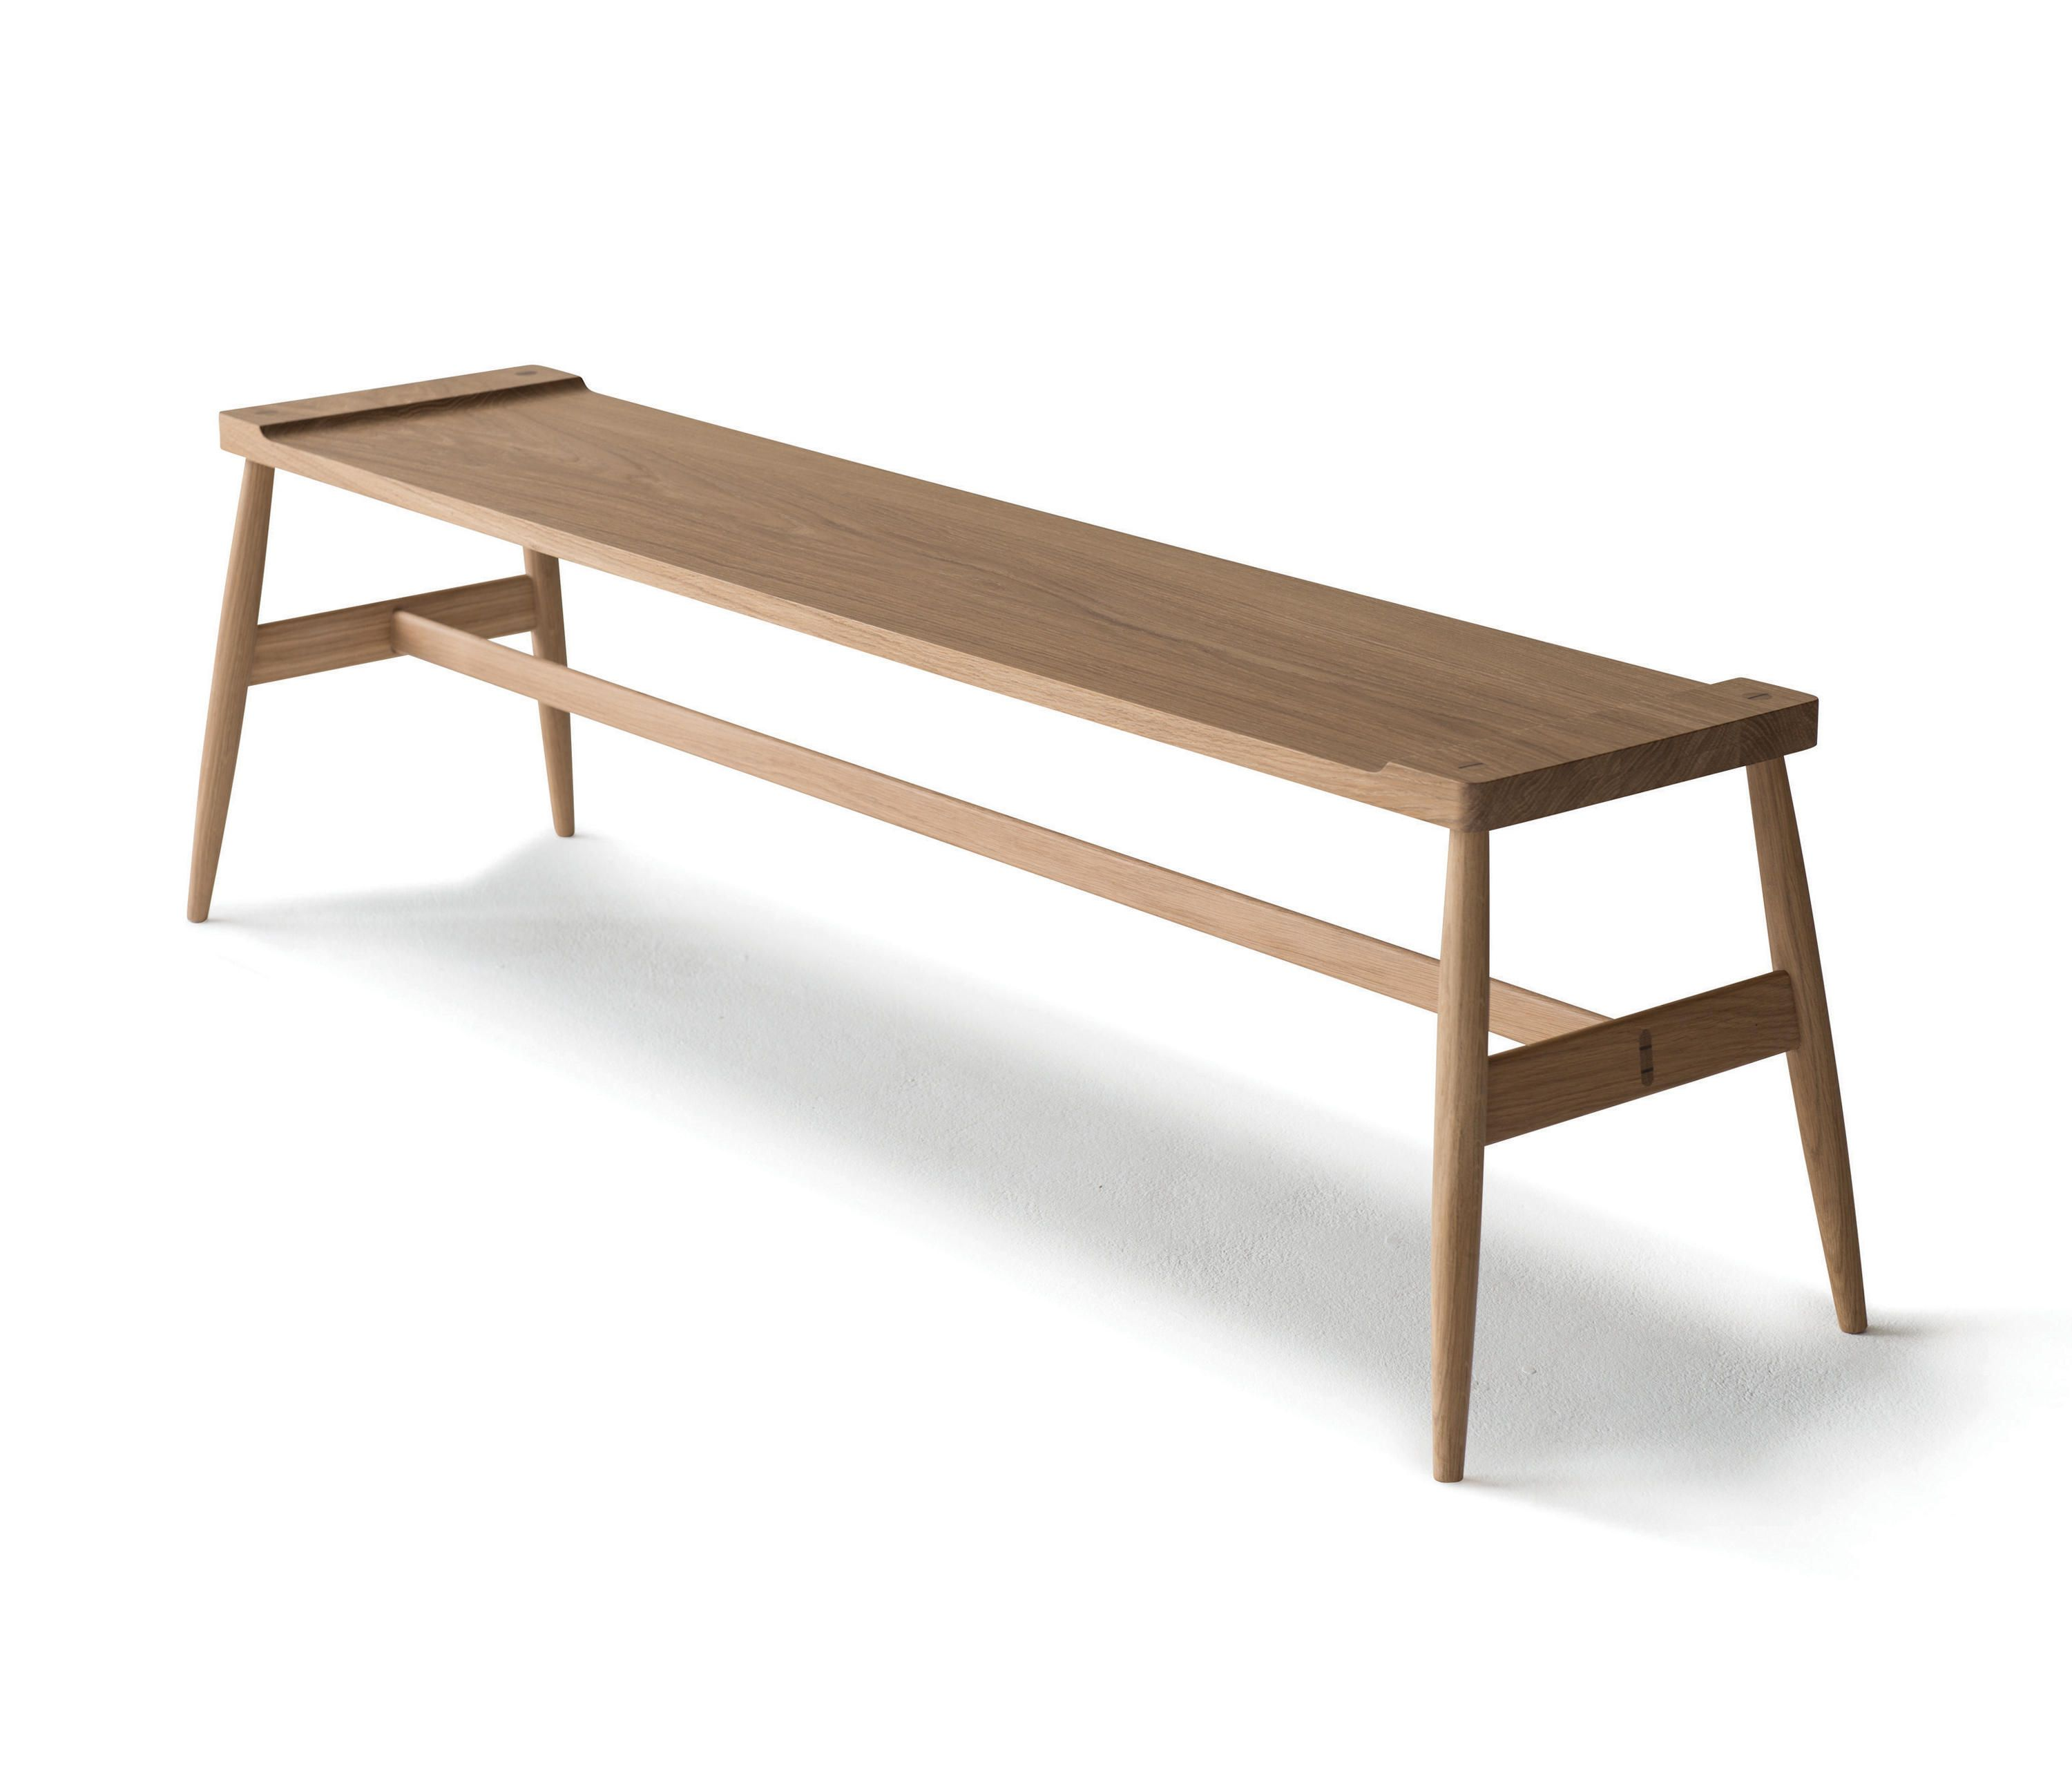 Imo Bench Designer Waiting Area Benches From Pinch All Information High Resolution Images Cads Catalogues Contact I Bench Furniture Furniture Bench